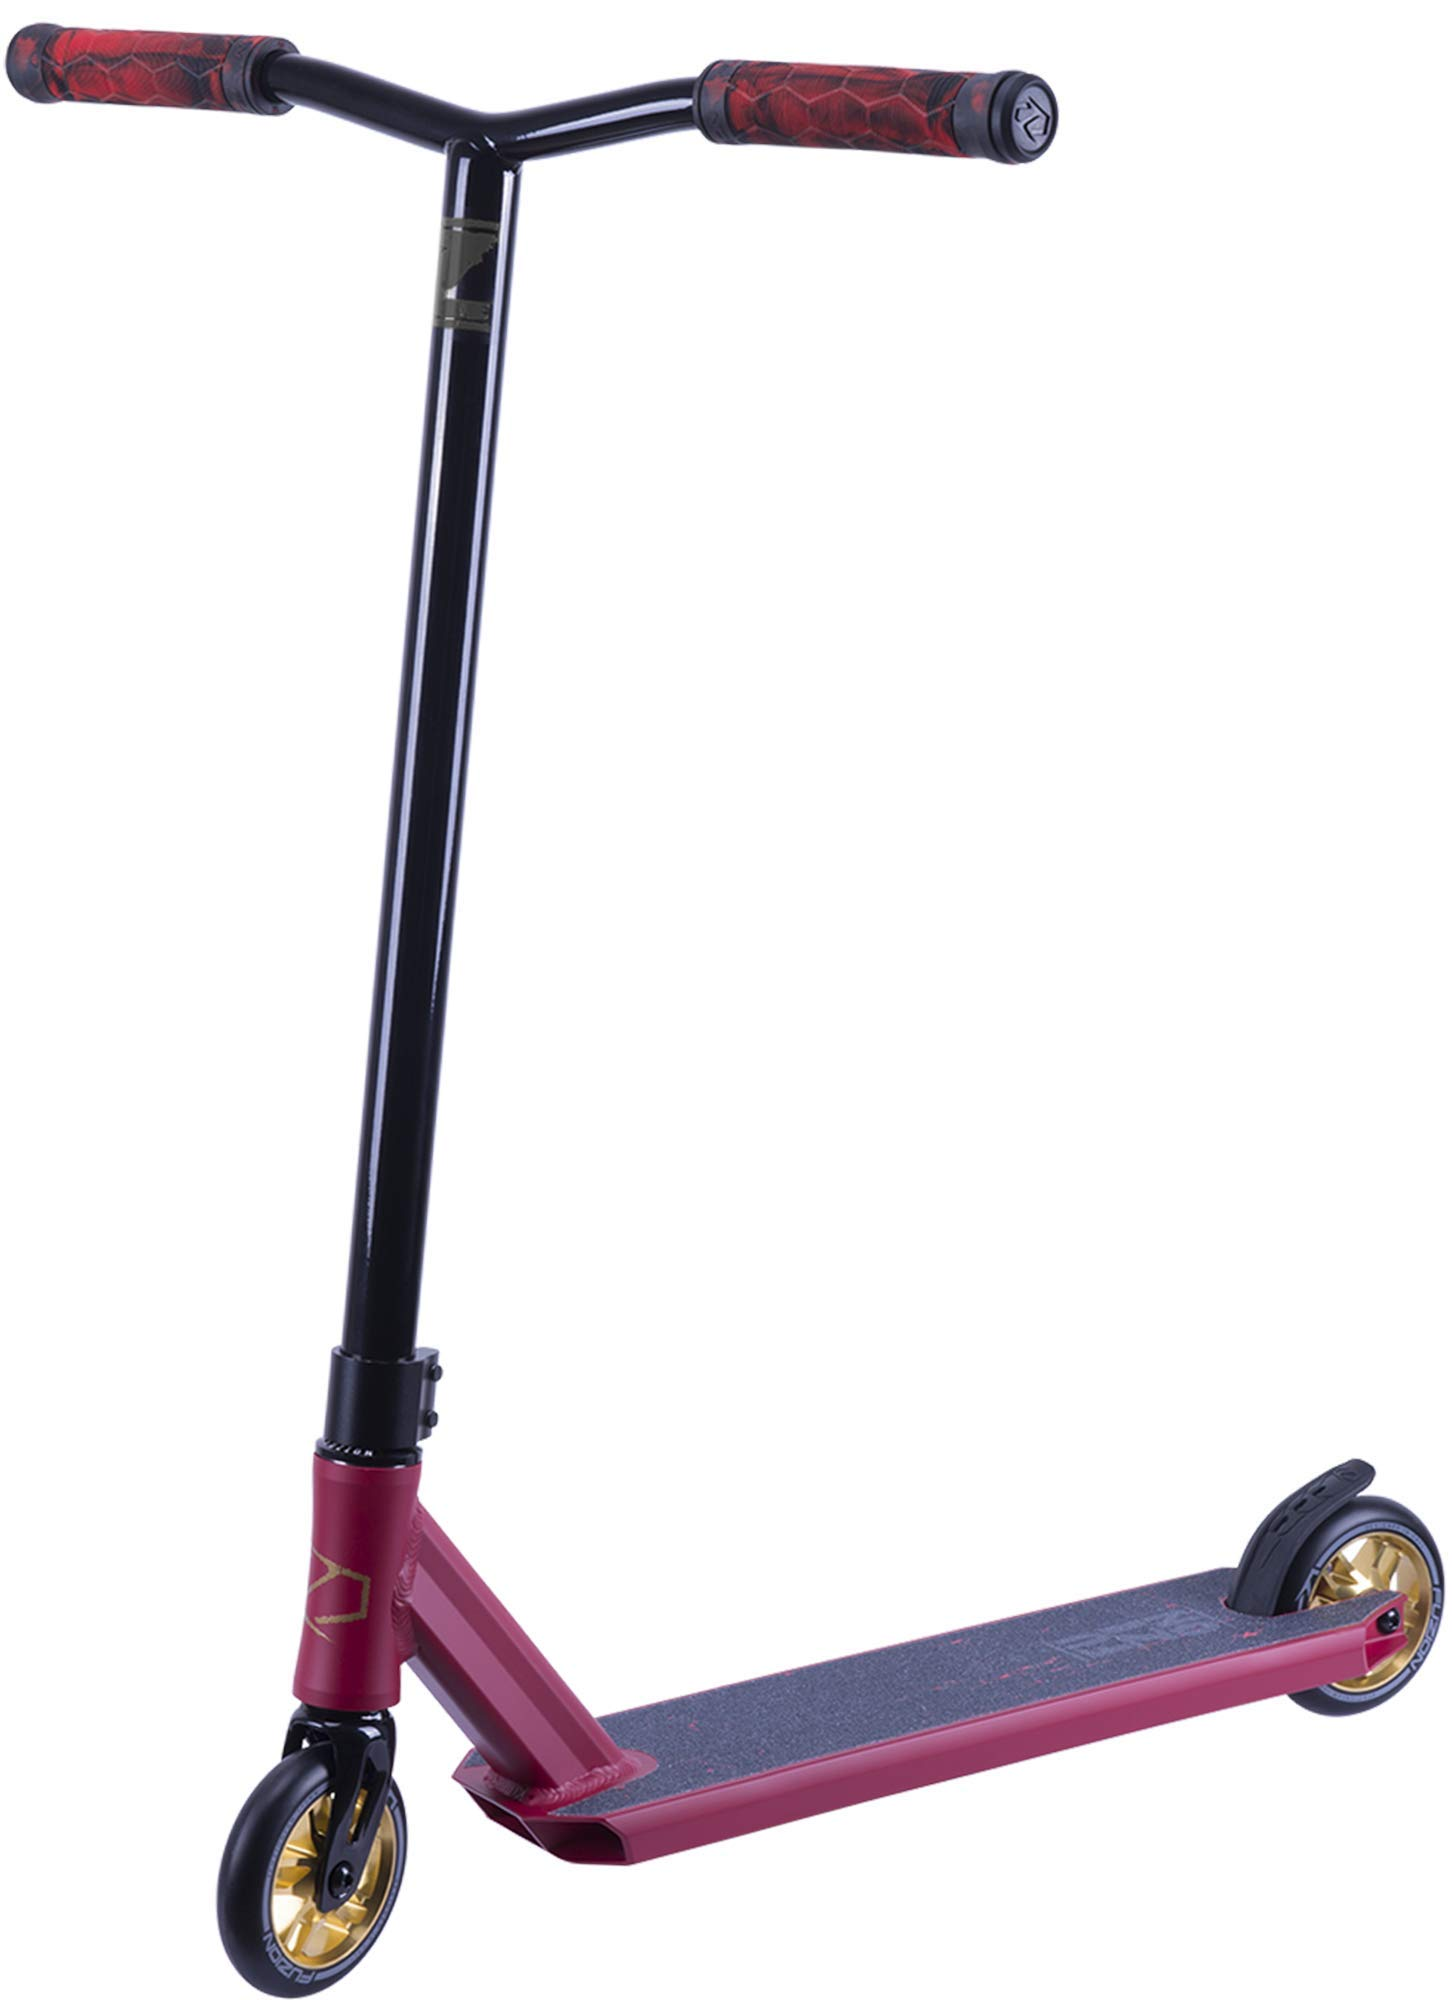 Fuzion Z250 Pro Scooters - Trick Scooter - Intermediate and Beginner Stunt Scooters for Kids 8 Years and Up, Teens and Adults – Durable Freestyle Kick Scooter for Boys and Girls (2019 Scorched Red) by Fuzion (Image #1)